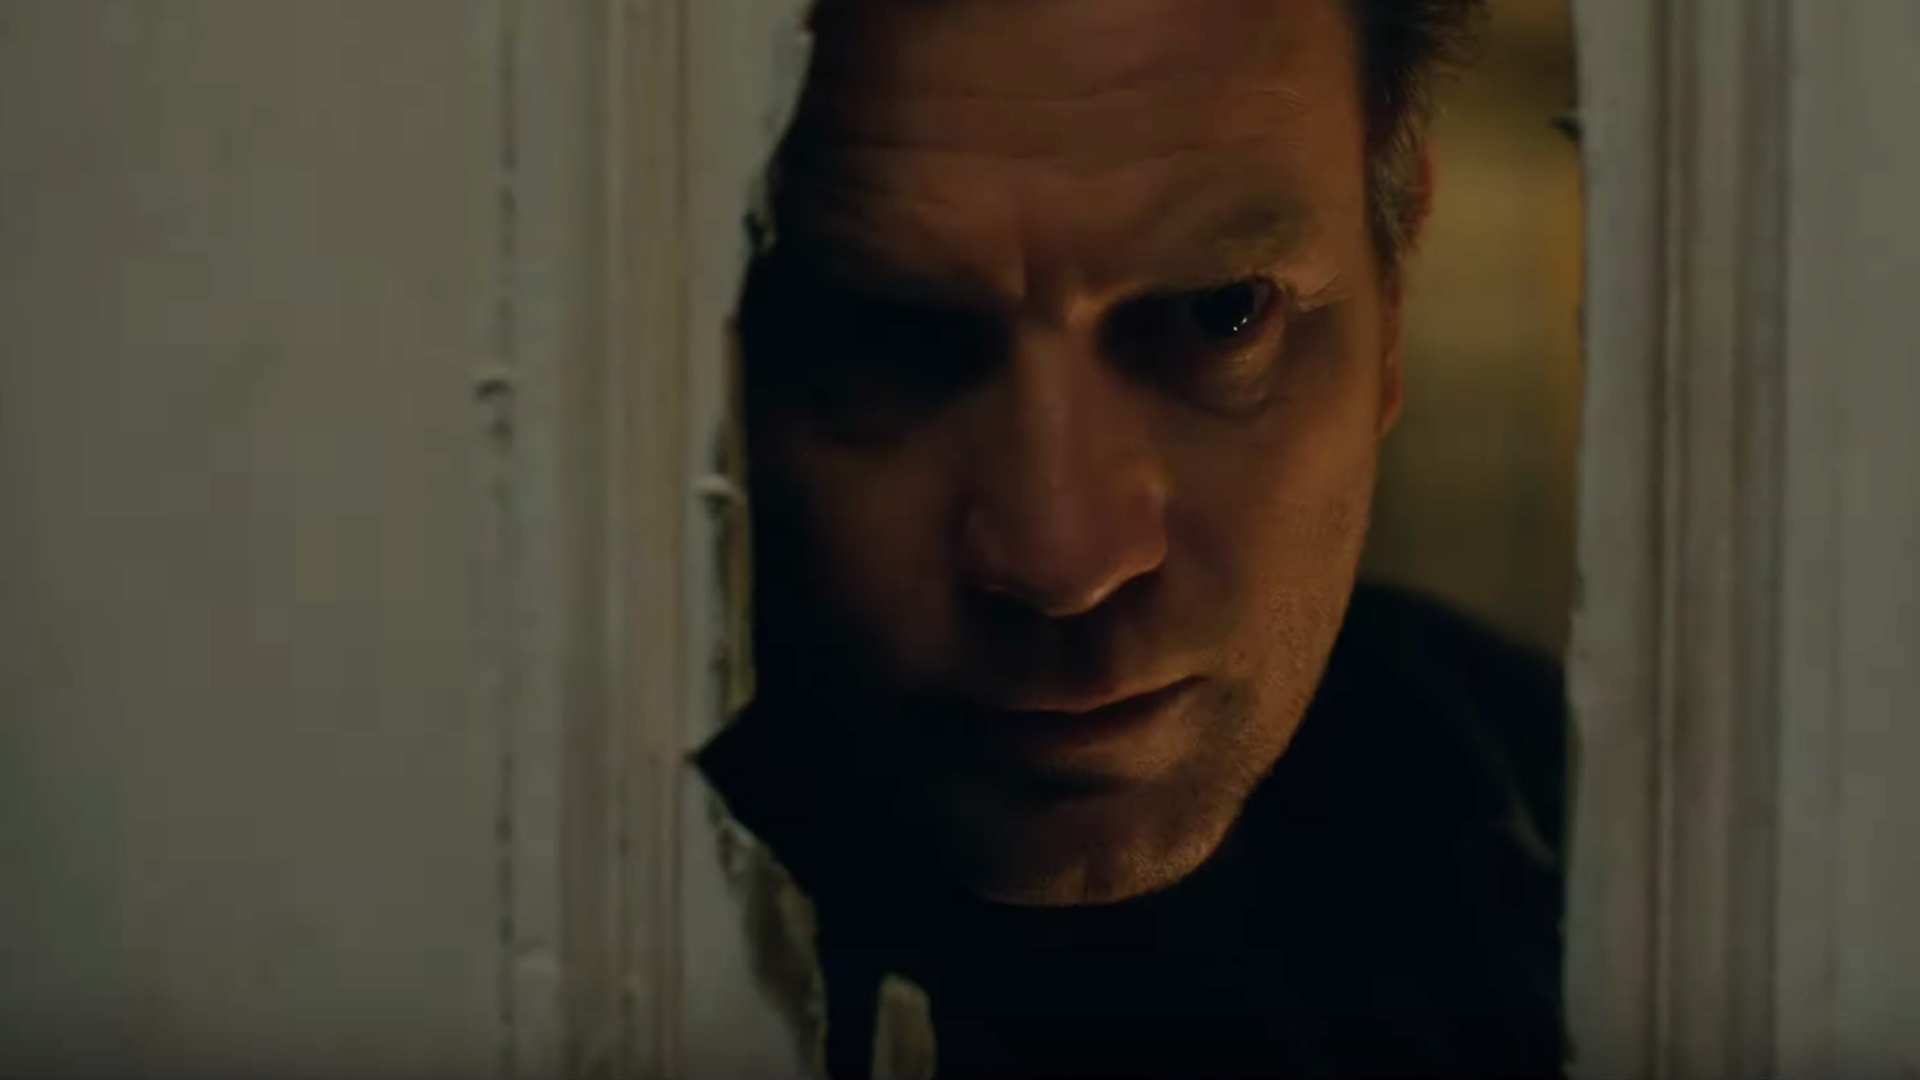 awesomely-chilling-first-trailer-for-the-shining-sequel-doctor-sleep-social.jpg